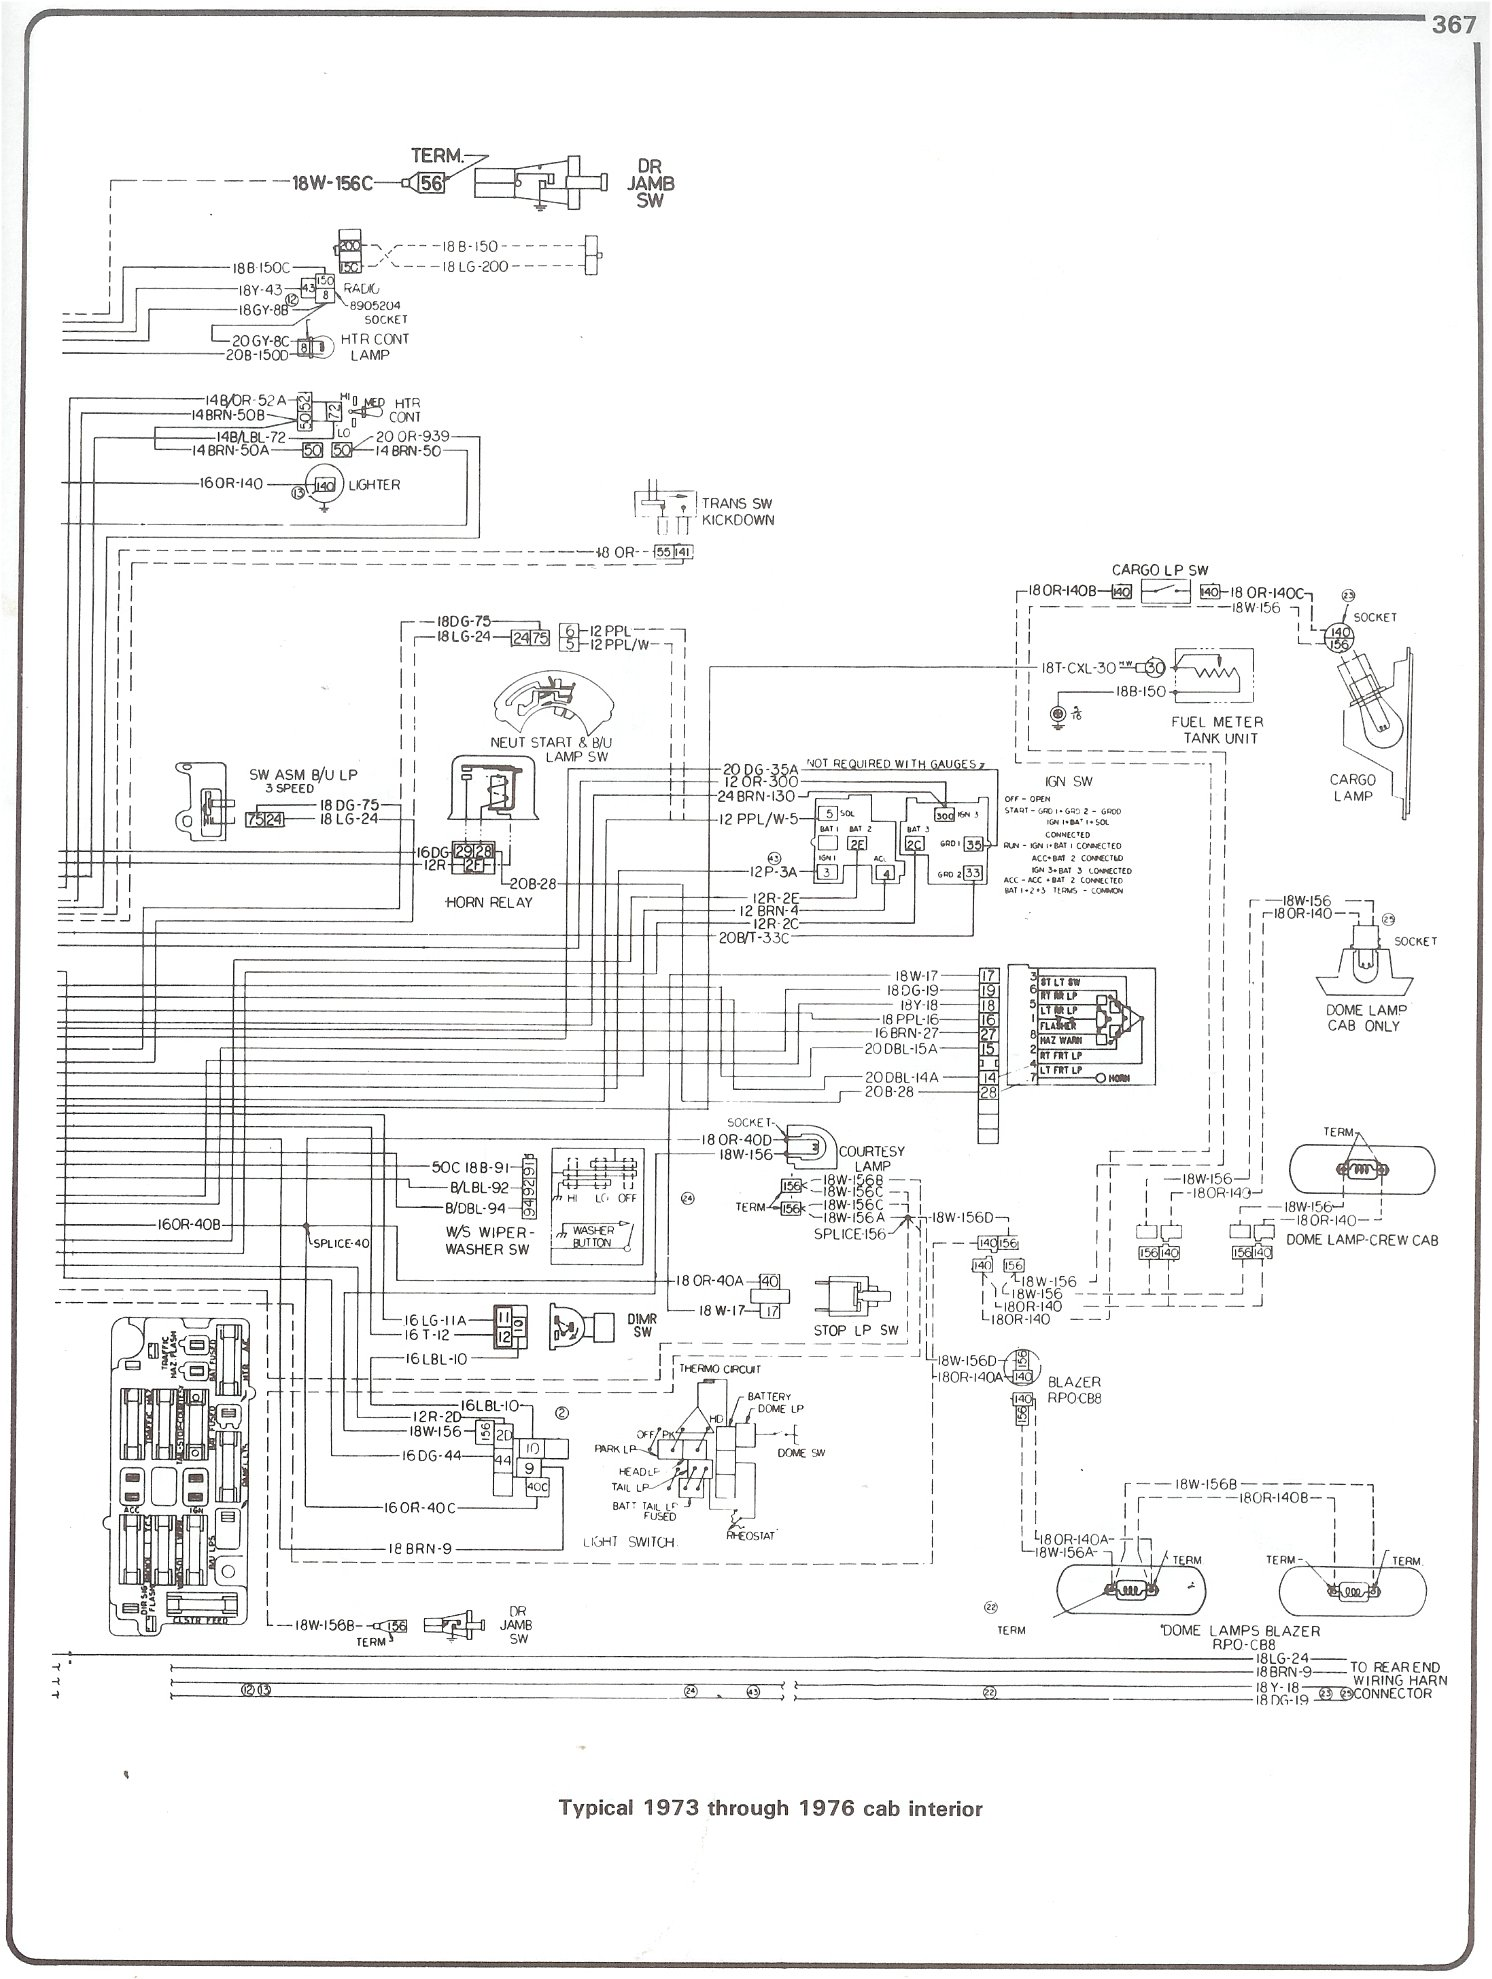 Electrical diagrams chevy only | Page 2 | Truck Forum on 95 s10 2.2 engine diagram, s 10 truck chassis, chevy s10 2.2l engine block diagram, chevy s10 electrical diagram, s 10 pickup truck, chevy s 10 1996 electrical schematic diagram, chevy s10 parts diagram, s 10 truck parts, s 10 wiring diagram obd, s 10 truck body, 97 s10 ignition switch diagram, pickup truck diagram, s 10 220 440 wiring schematics, s 10 wiring schematics dash 97, s 10 truck radio,